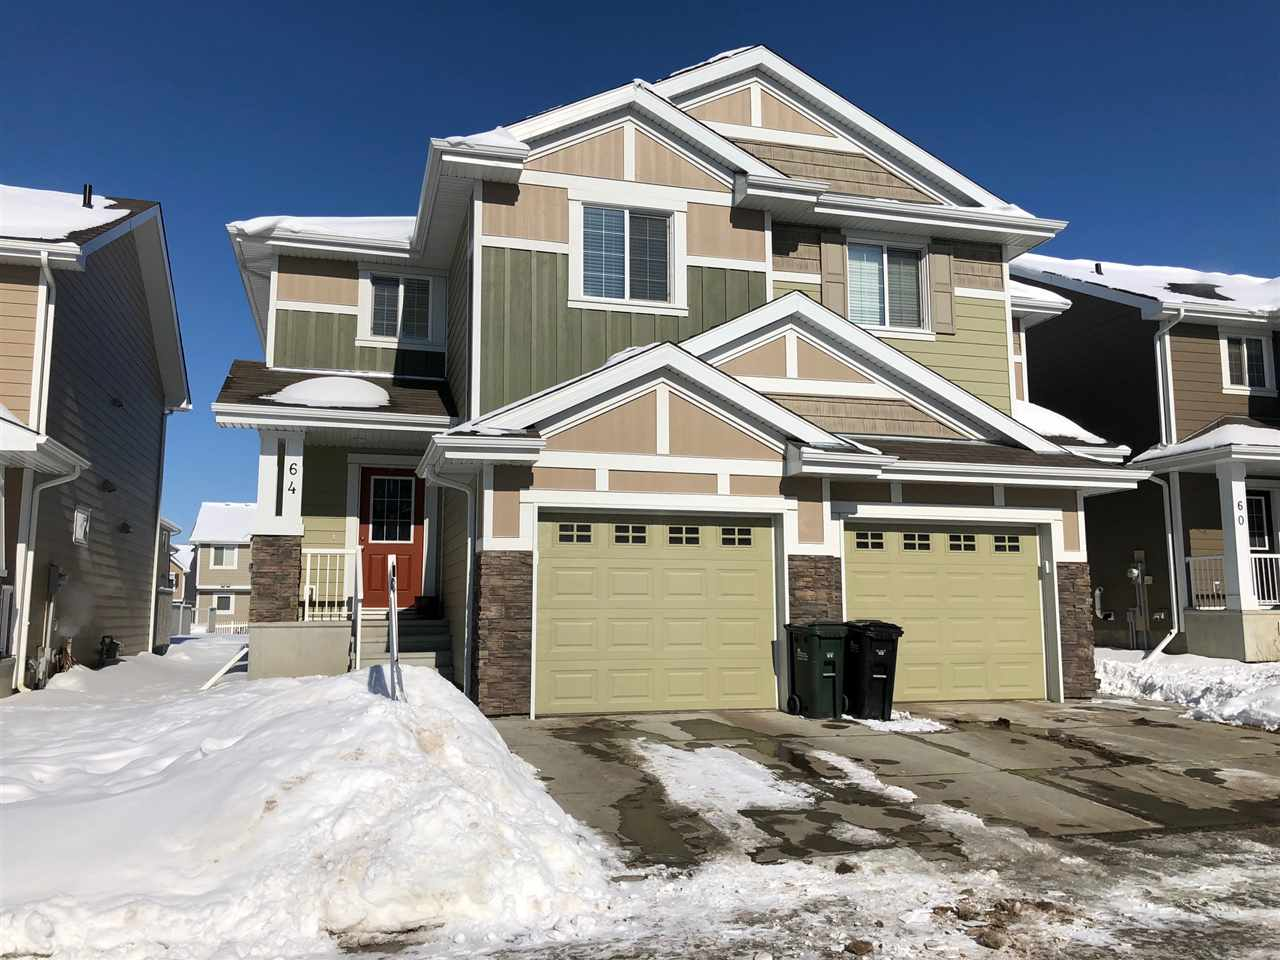 Main Photo: 64 219 Charlotte Way: Sherwood Park House Half Duplex for sale : MLS® # E4099744